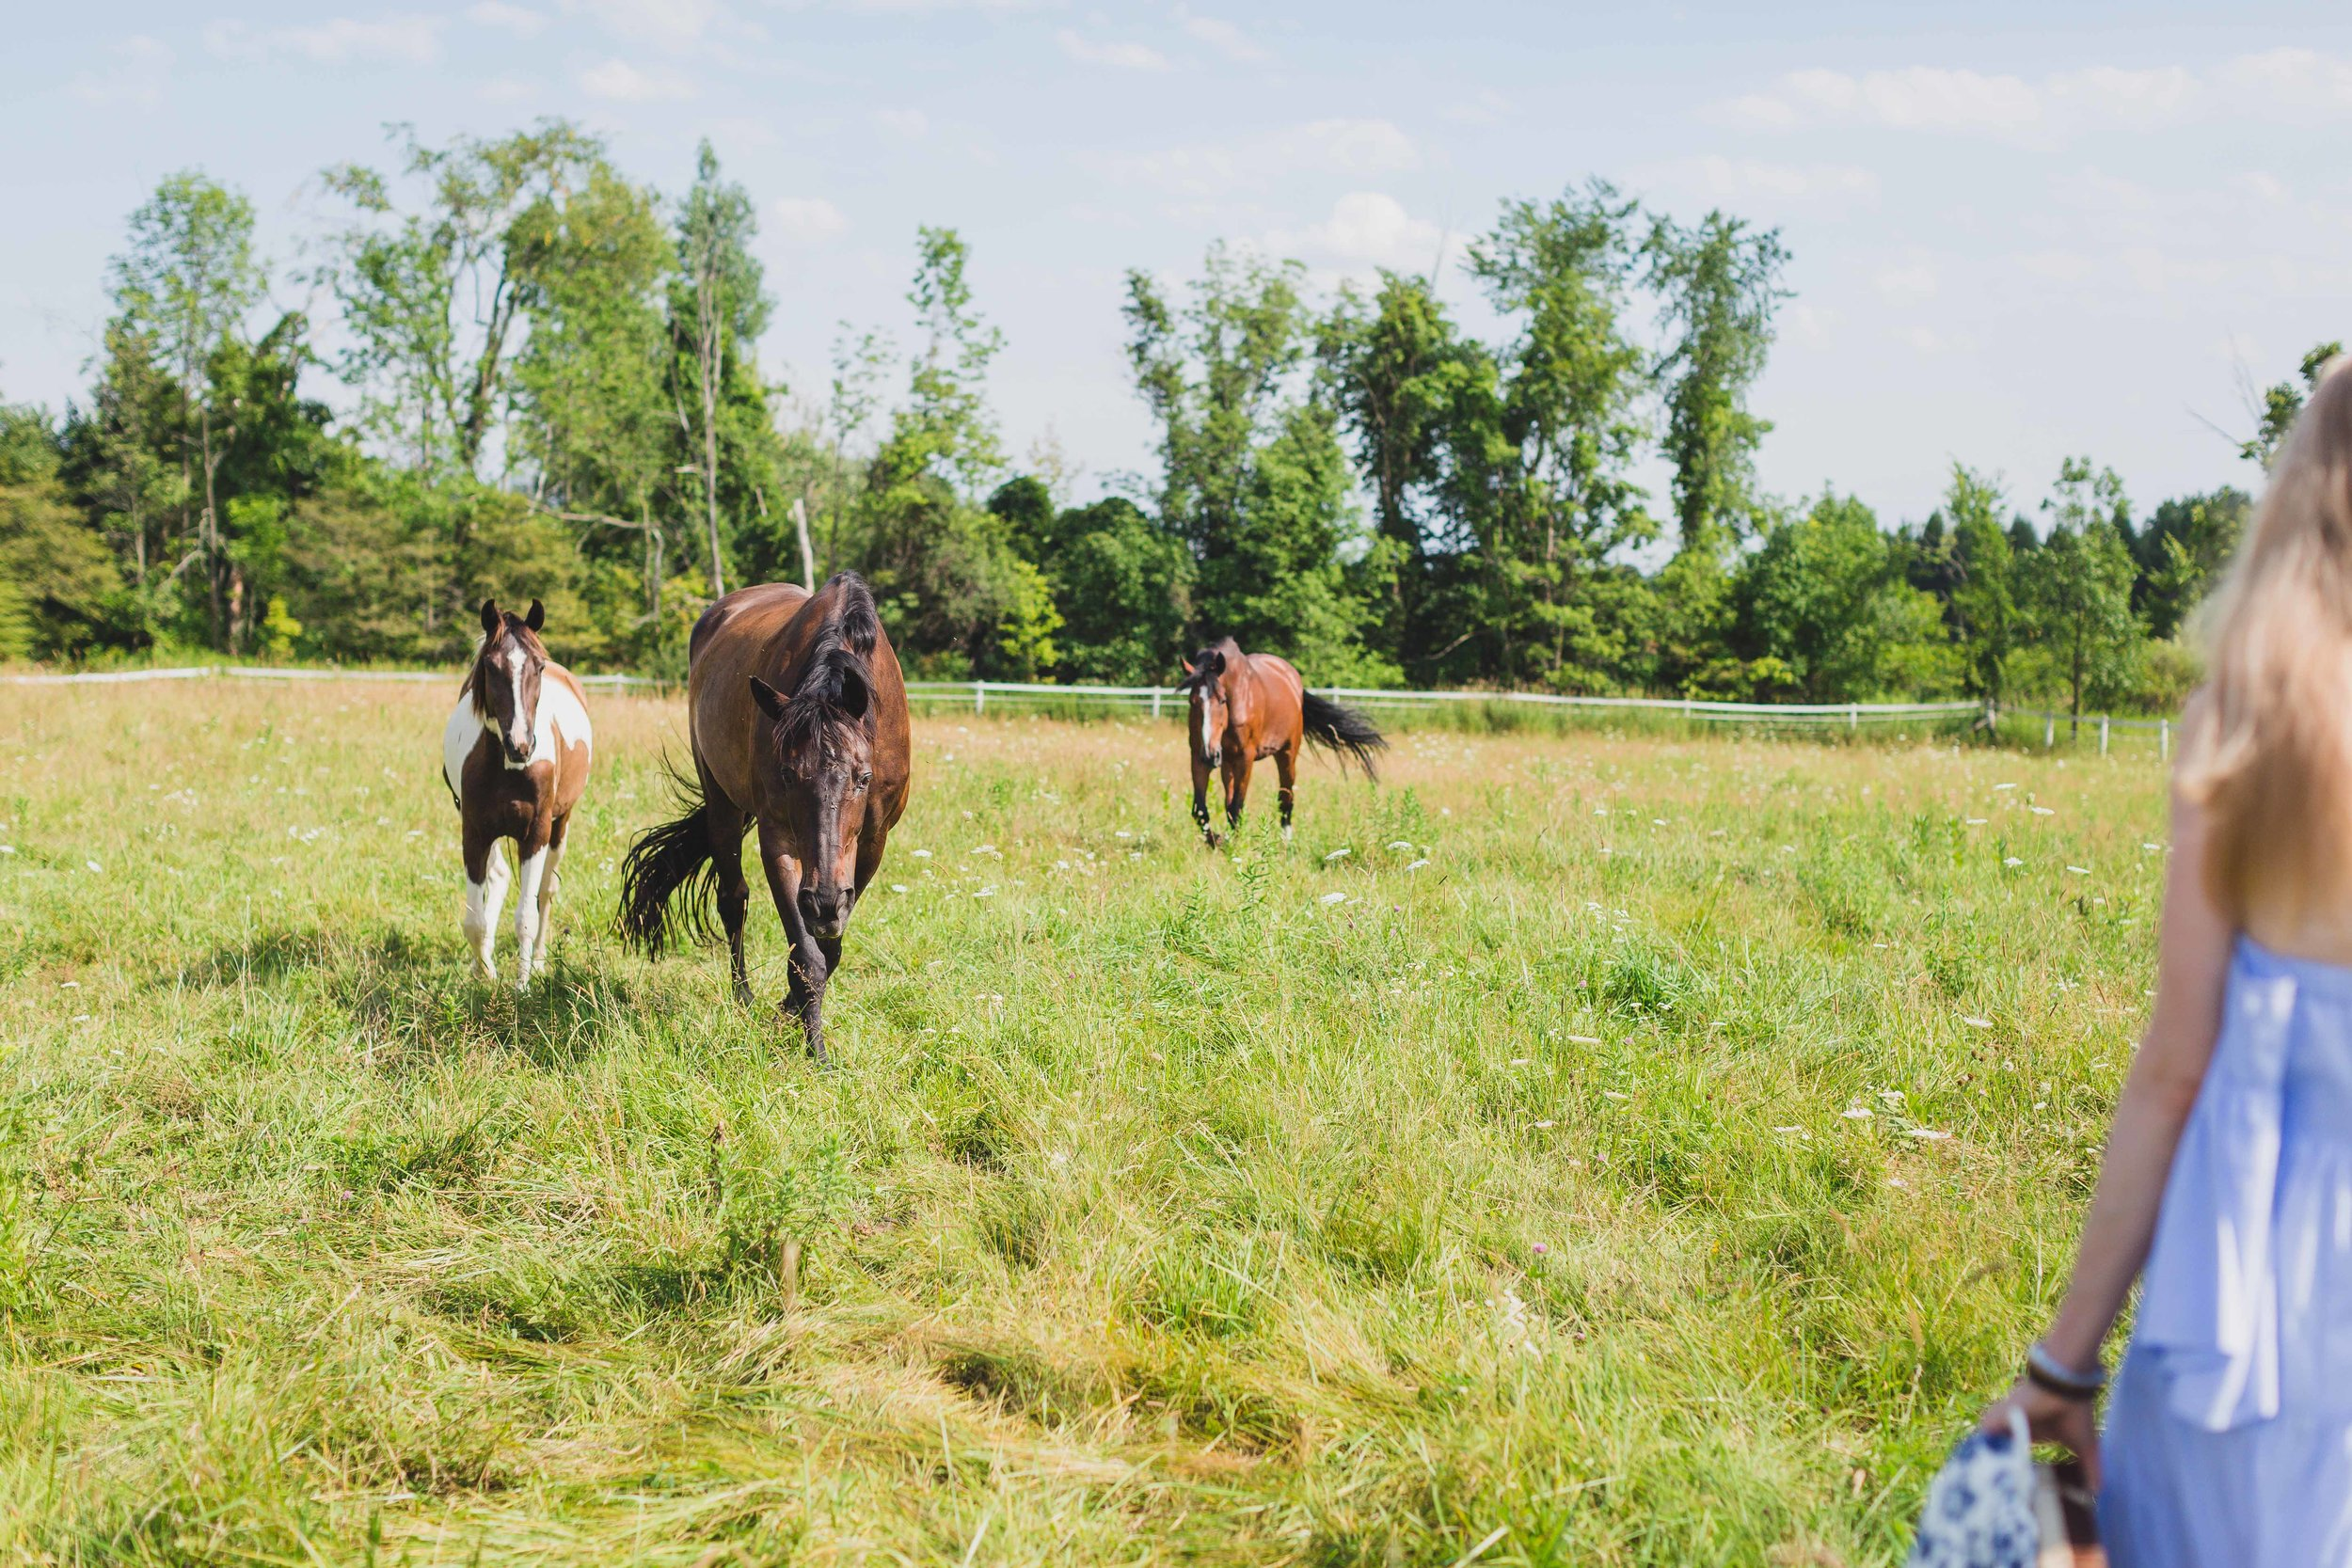 The healing with horses herd coming in for a session.